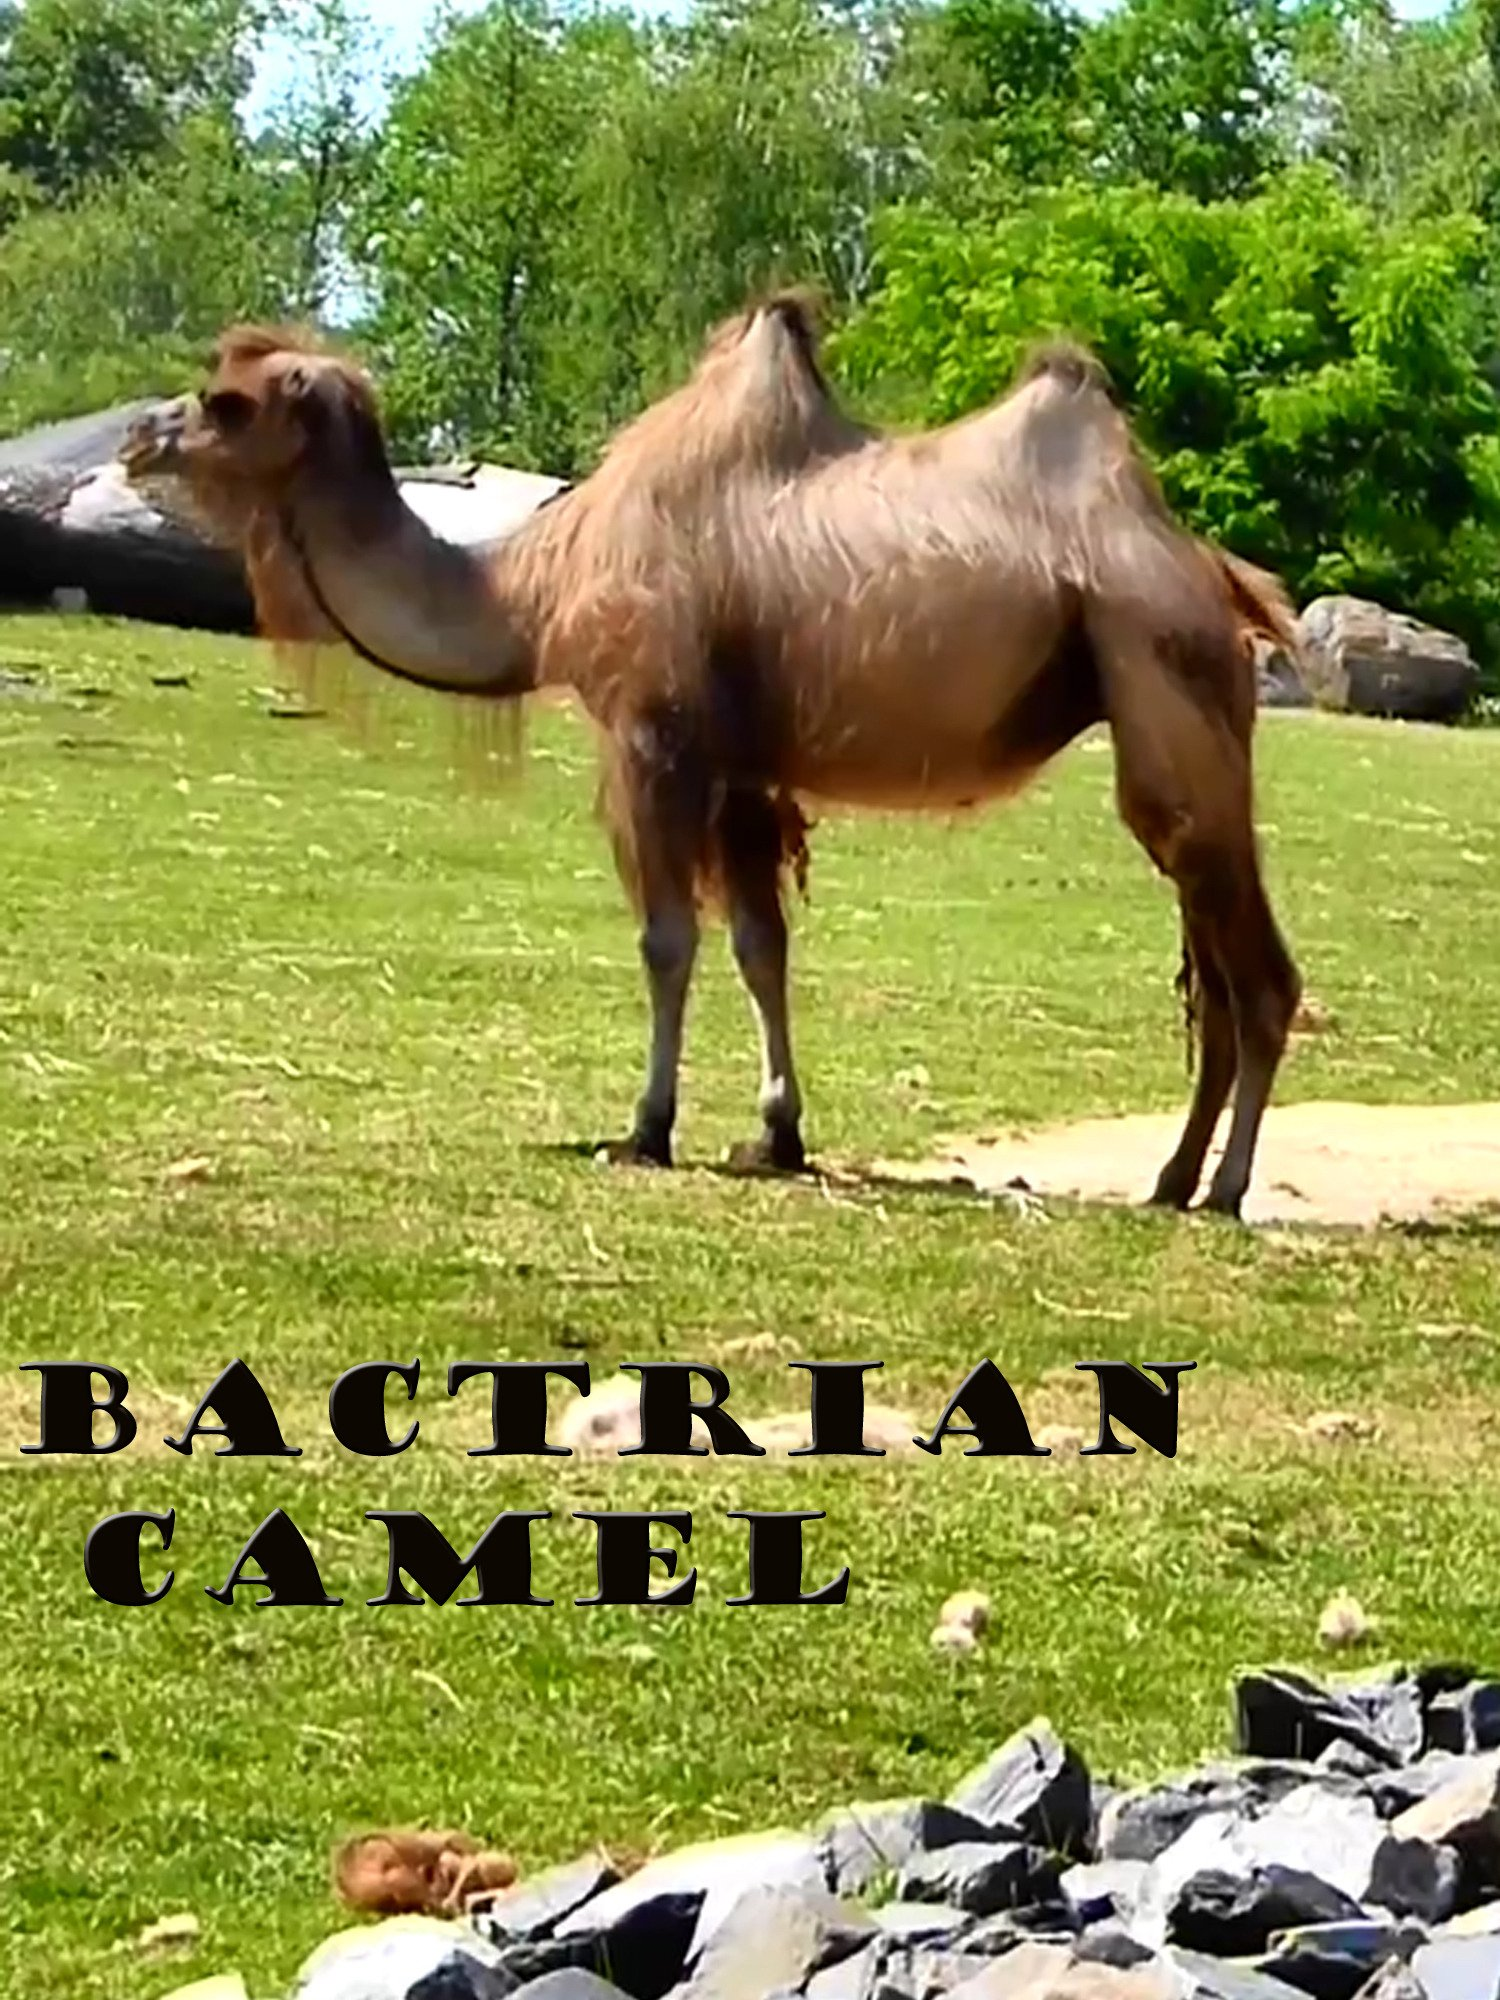 Clip: Bactrian camel on Amazon Prime Instant Video UK